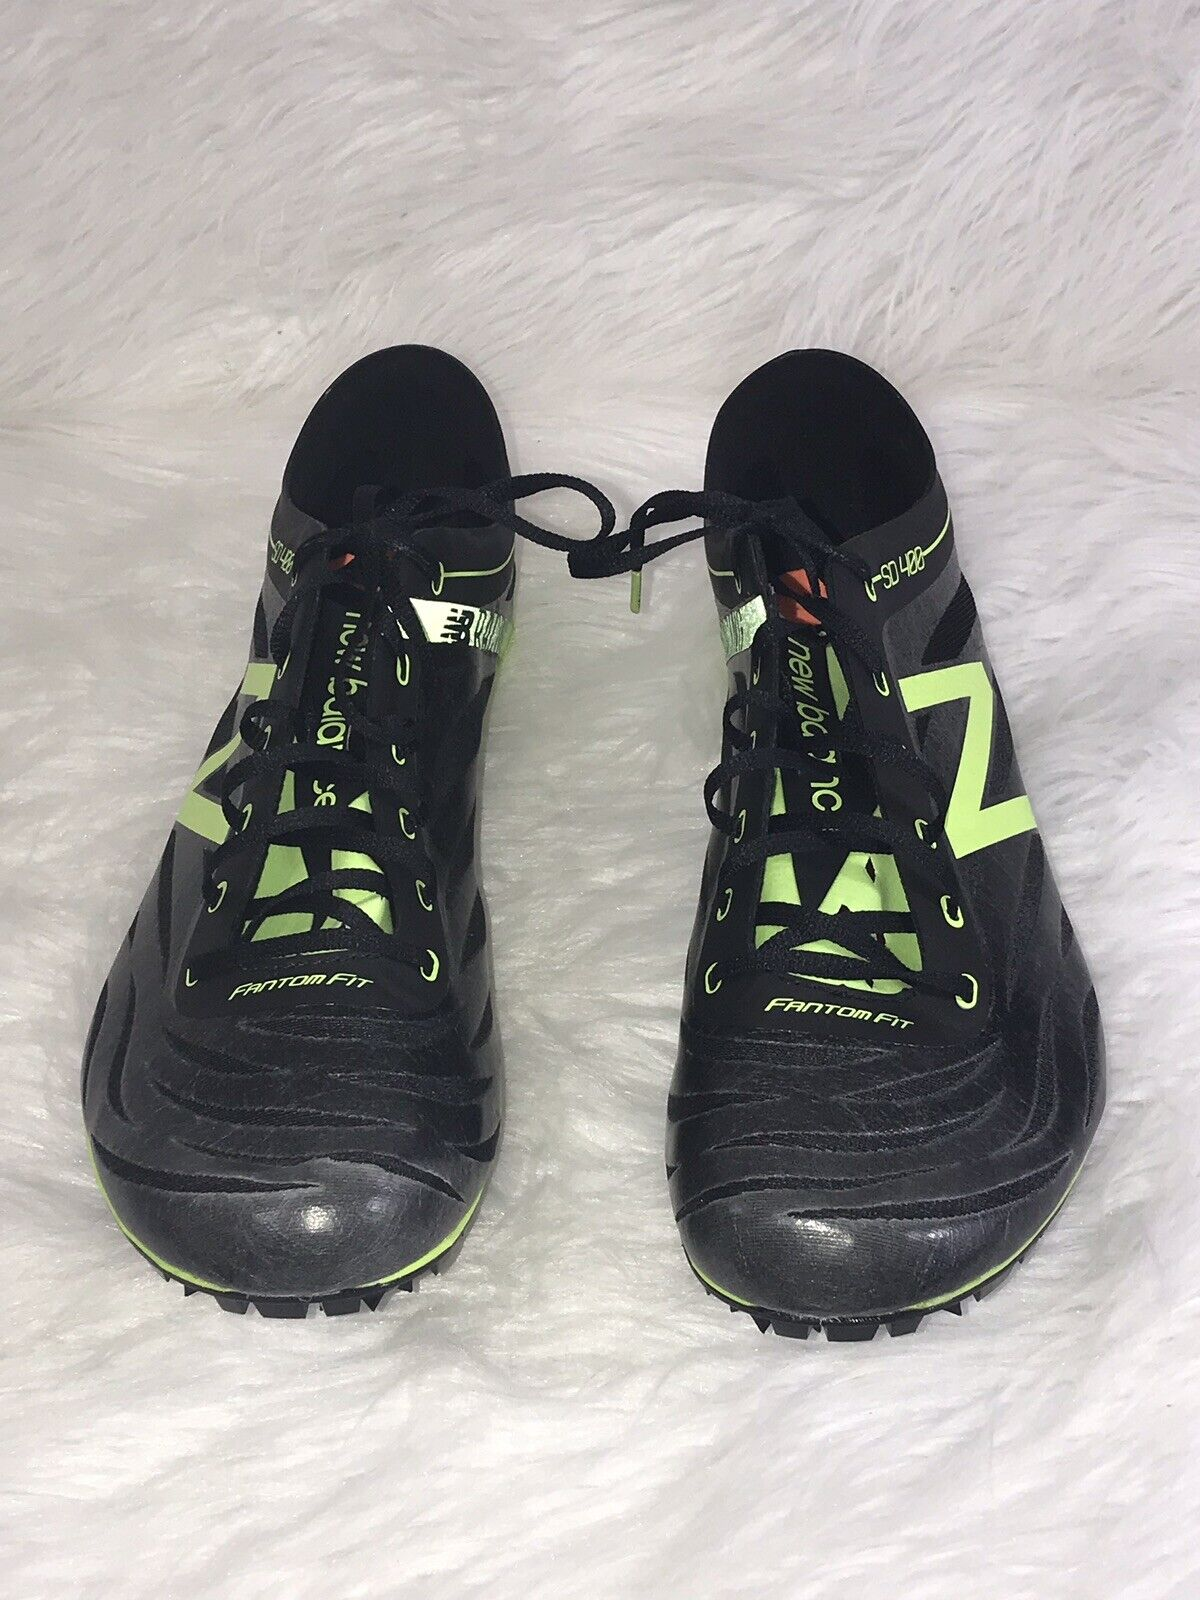 New Balance Mens Size 12 New Track Running shoes Green Black Spike MSD400B3